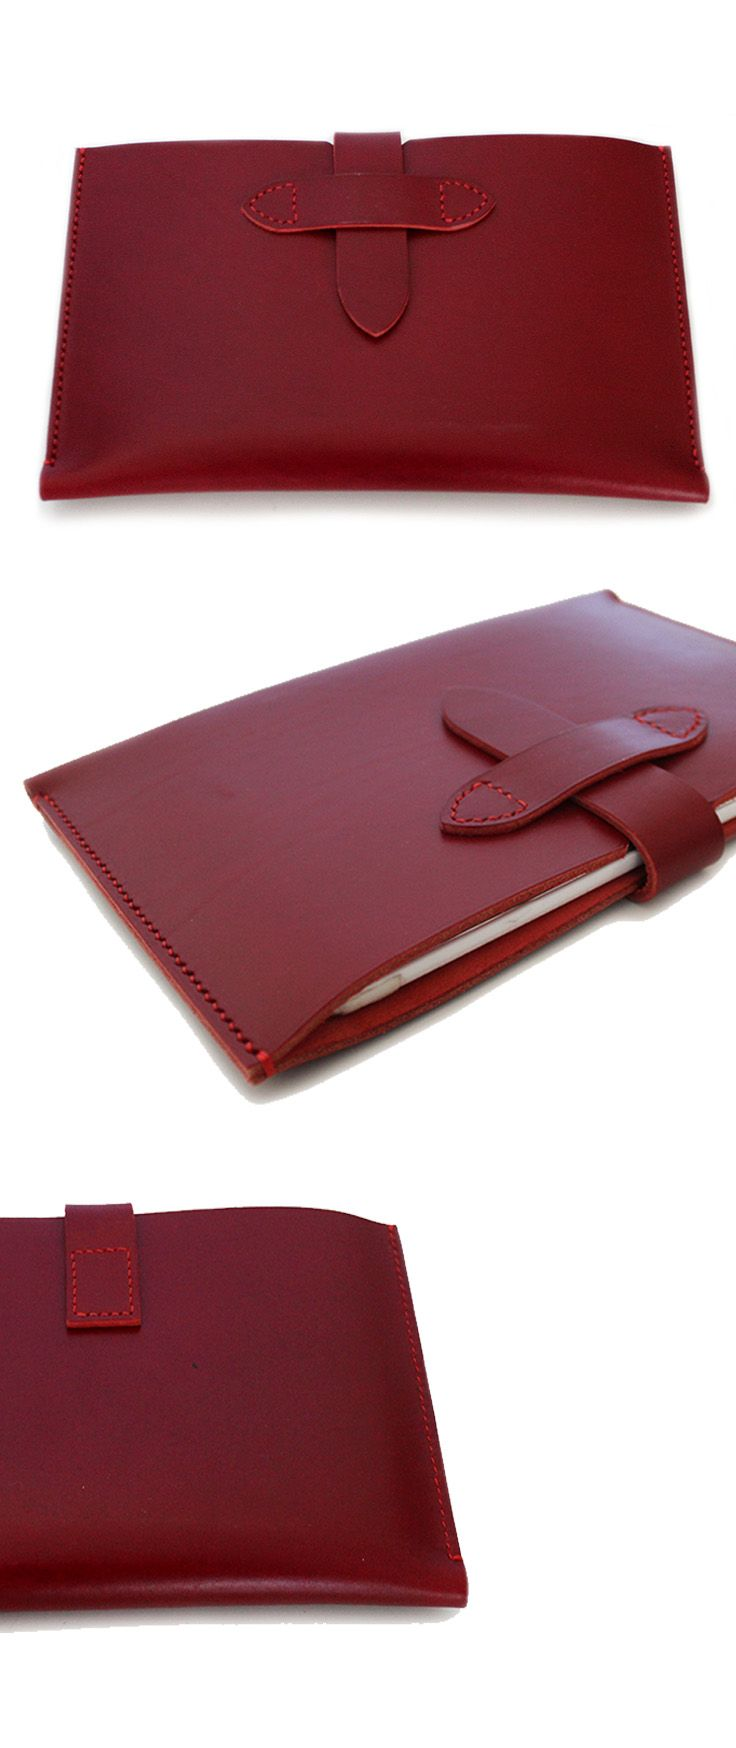 Personalized iPad Pro, iPad Air, iPad Mini, Tablet cases - Hand Stitched Leather Sleeve in Vegetable tanned DARK RED All sizes are available. iPad Mini iPad Pro 9.7 iPad Pro 10.5 iPad Pro 12.9 iPad Air Series amazon fire 7 Lenovo tab case Galaxy tab case ms surface sleeve